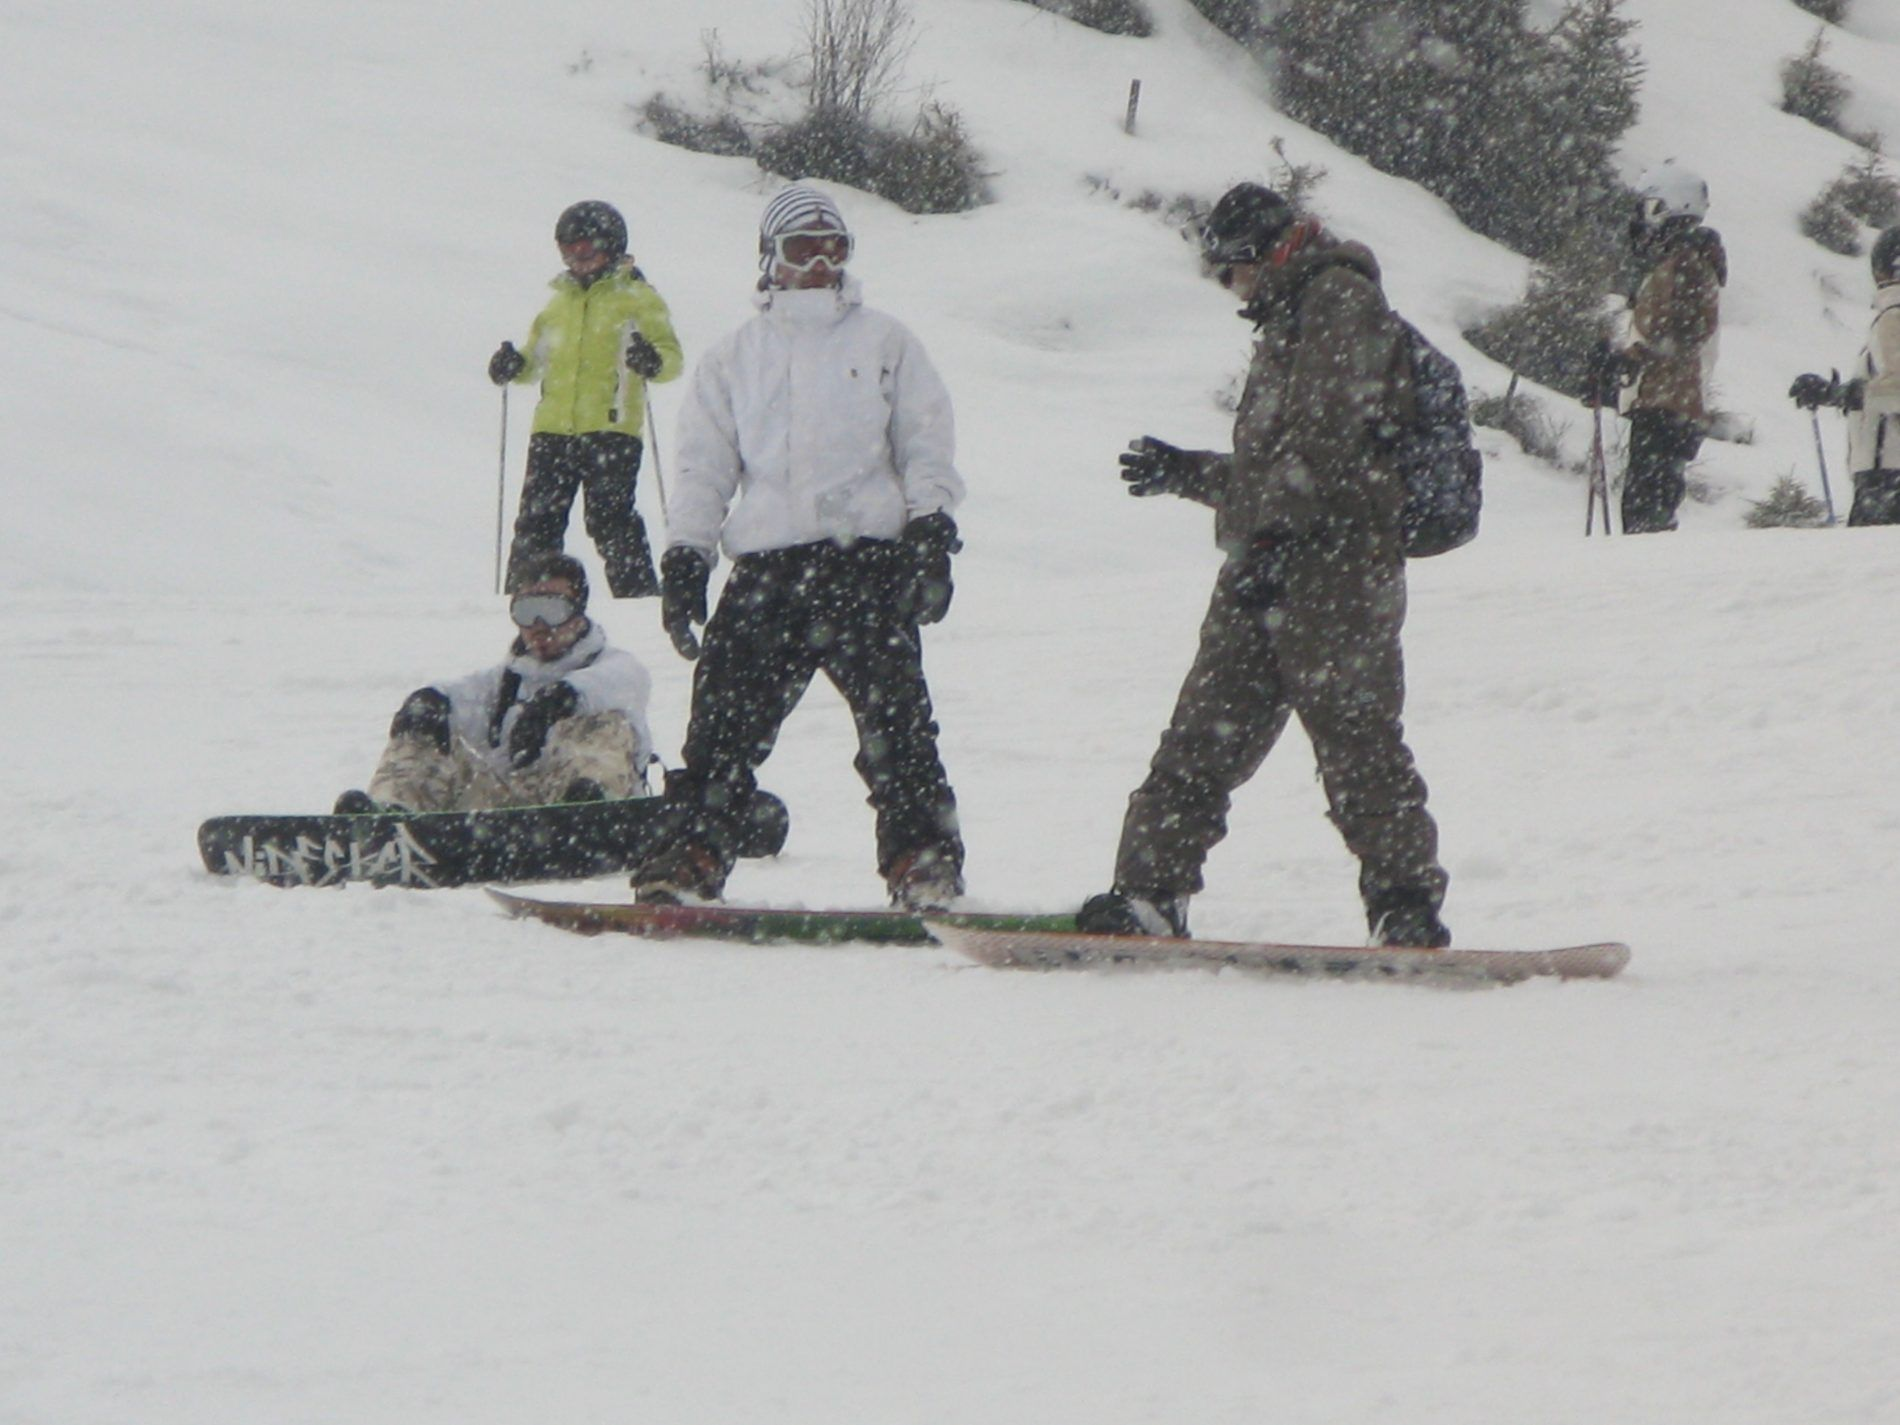 snowboard travelshare.gr - bad weather